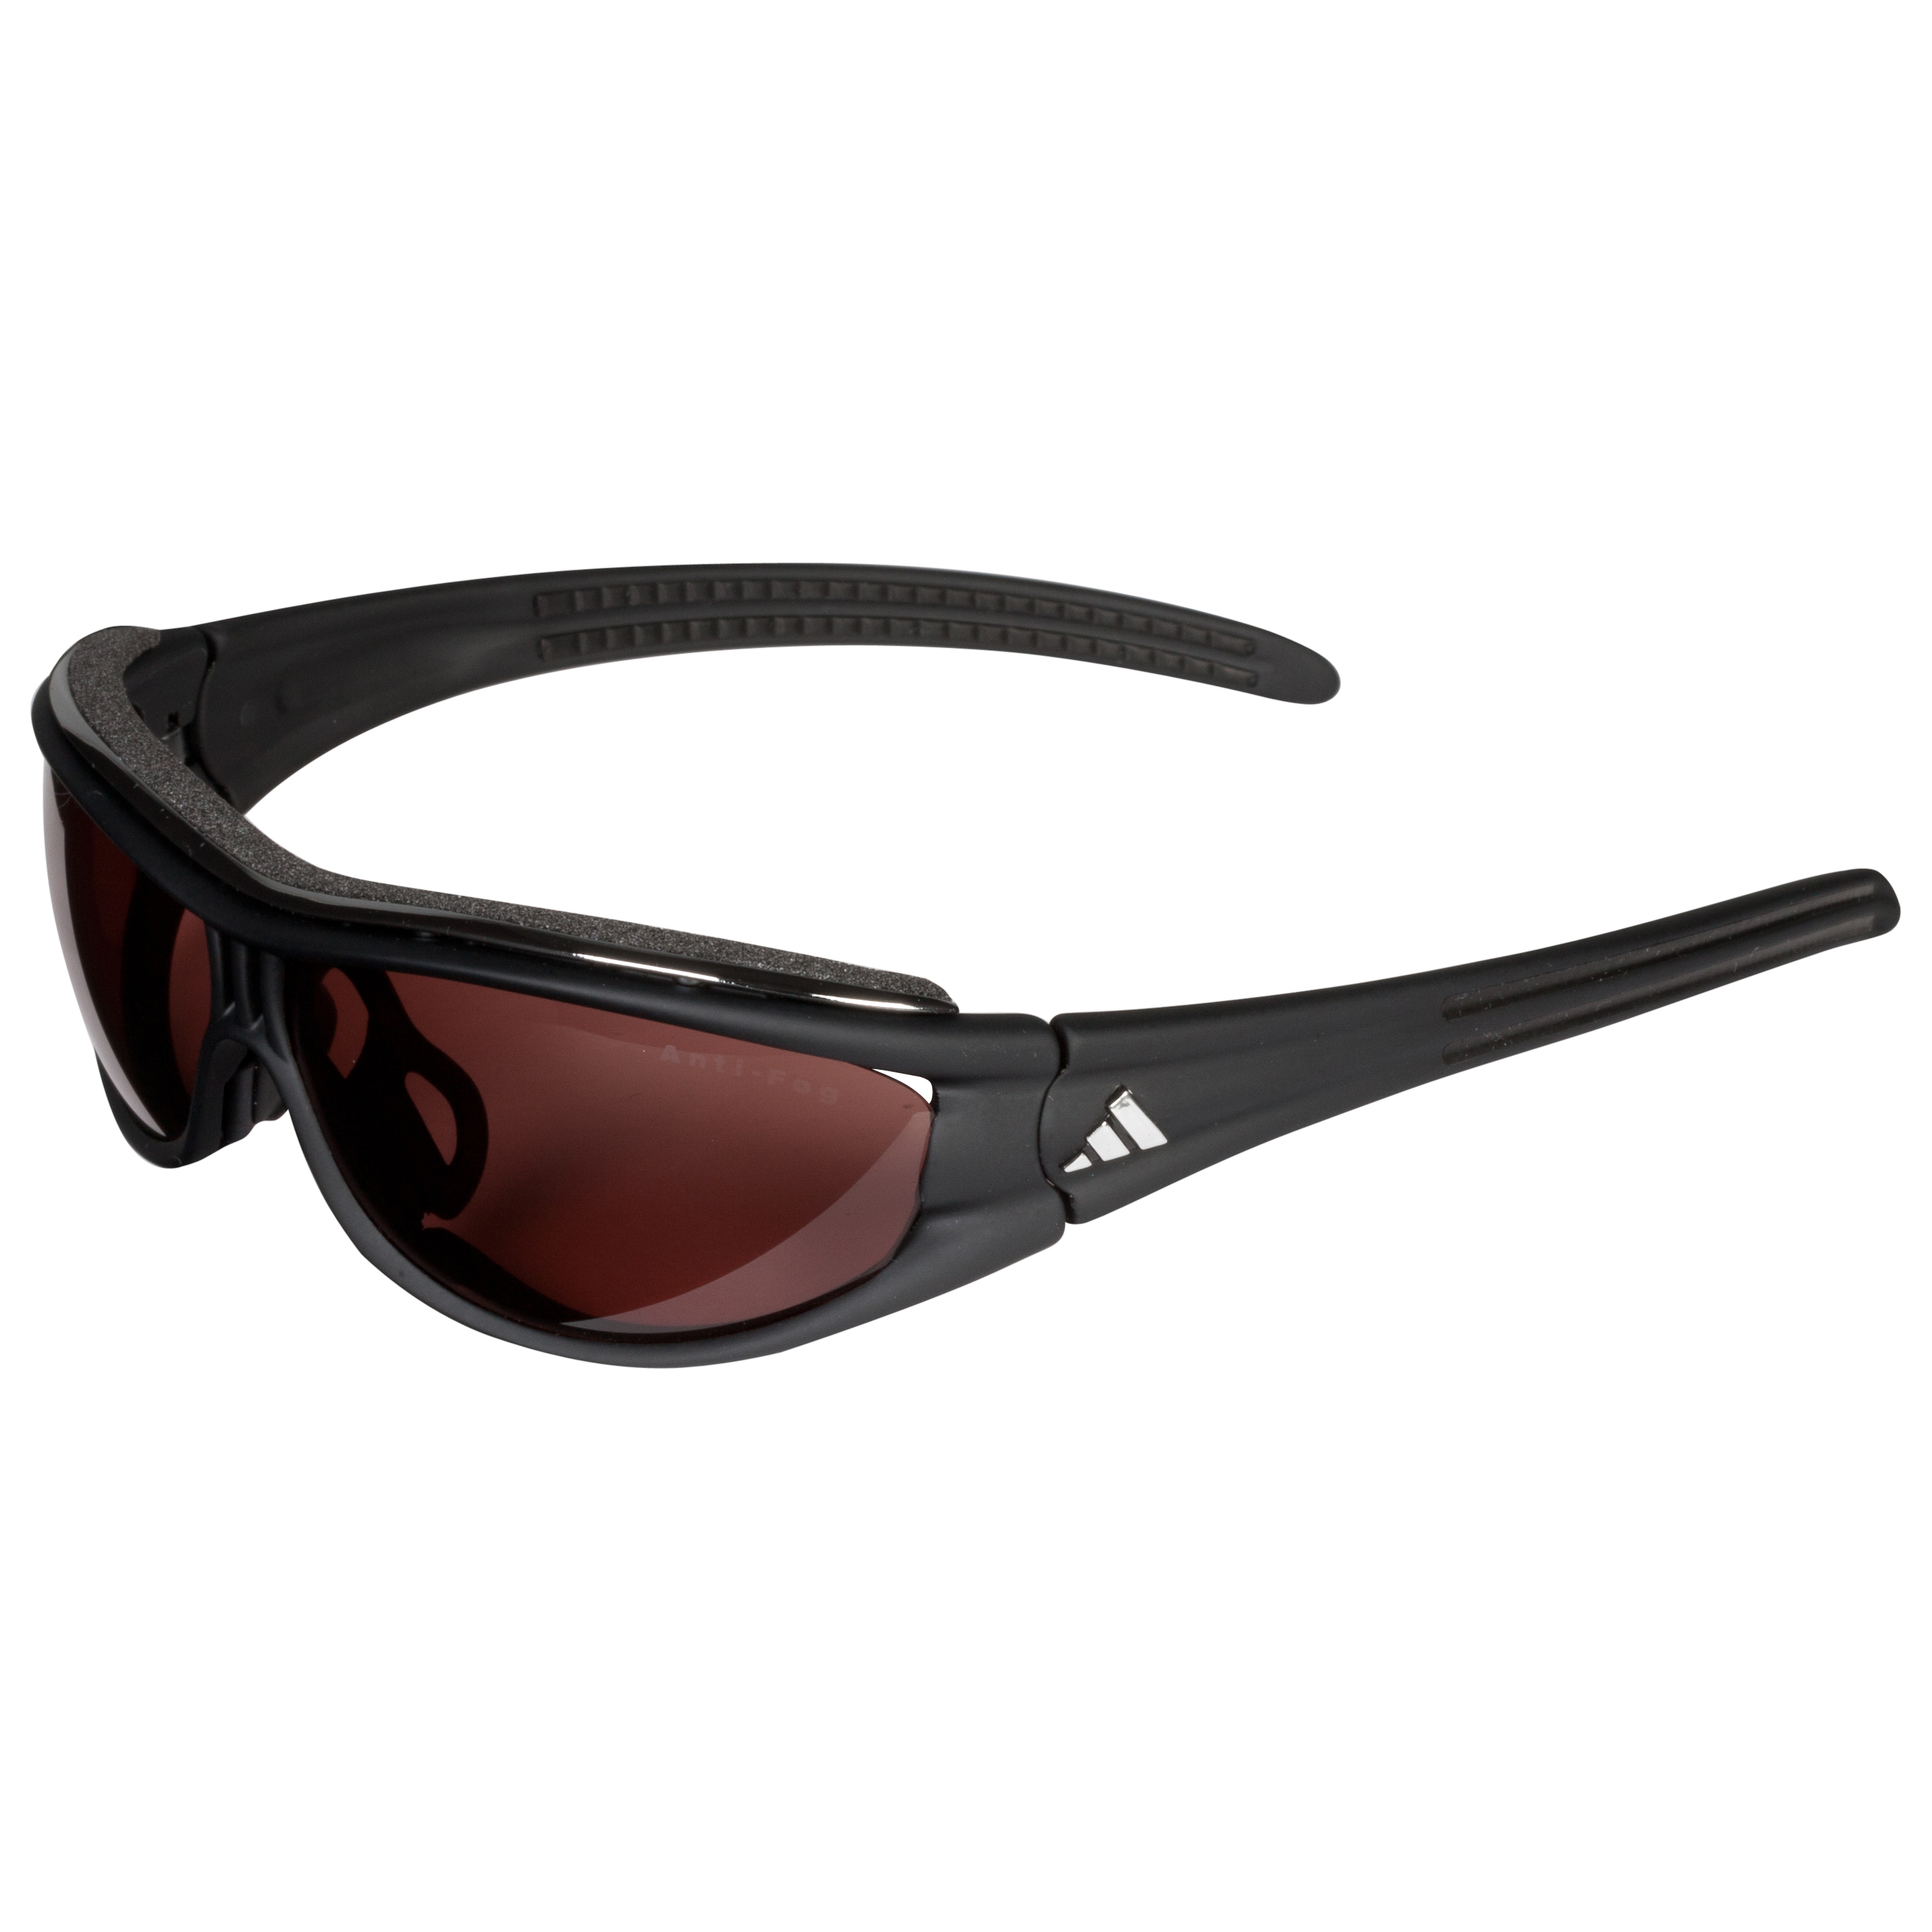 Adidas Evil Eye Pro Sunglasses - Black - Small